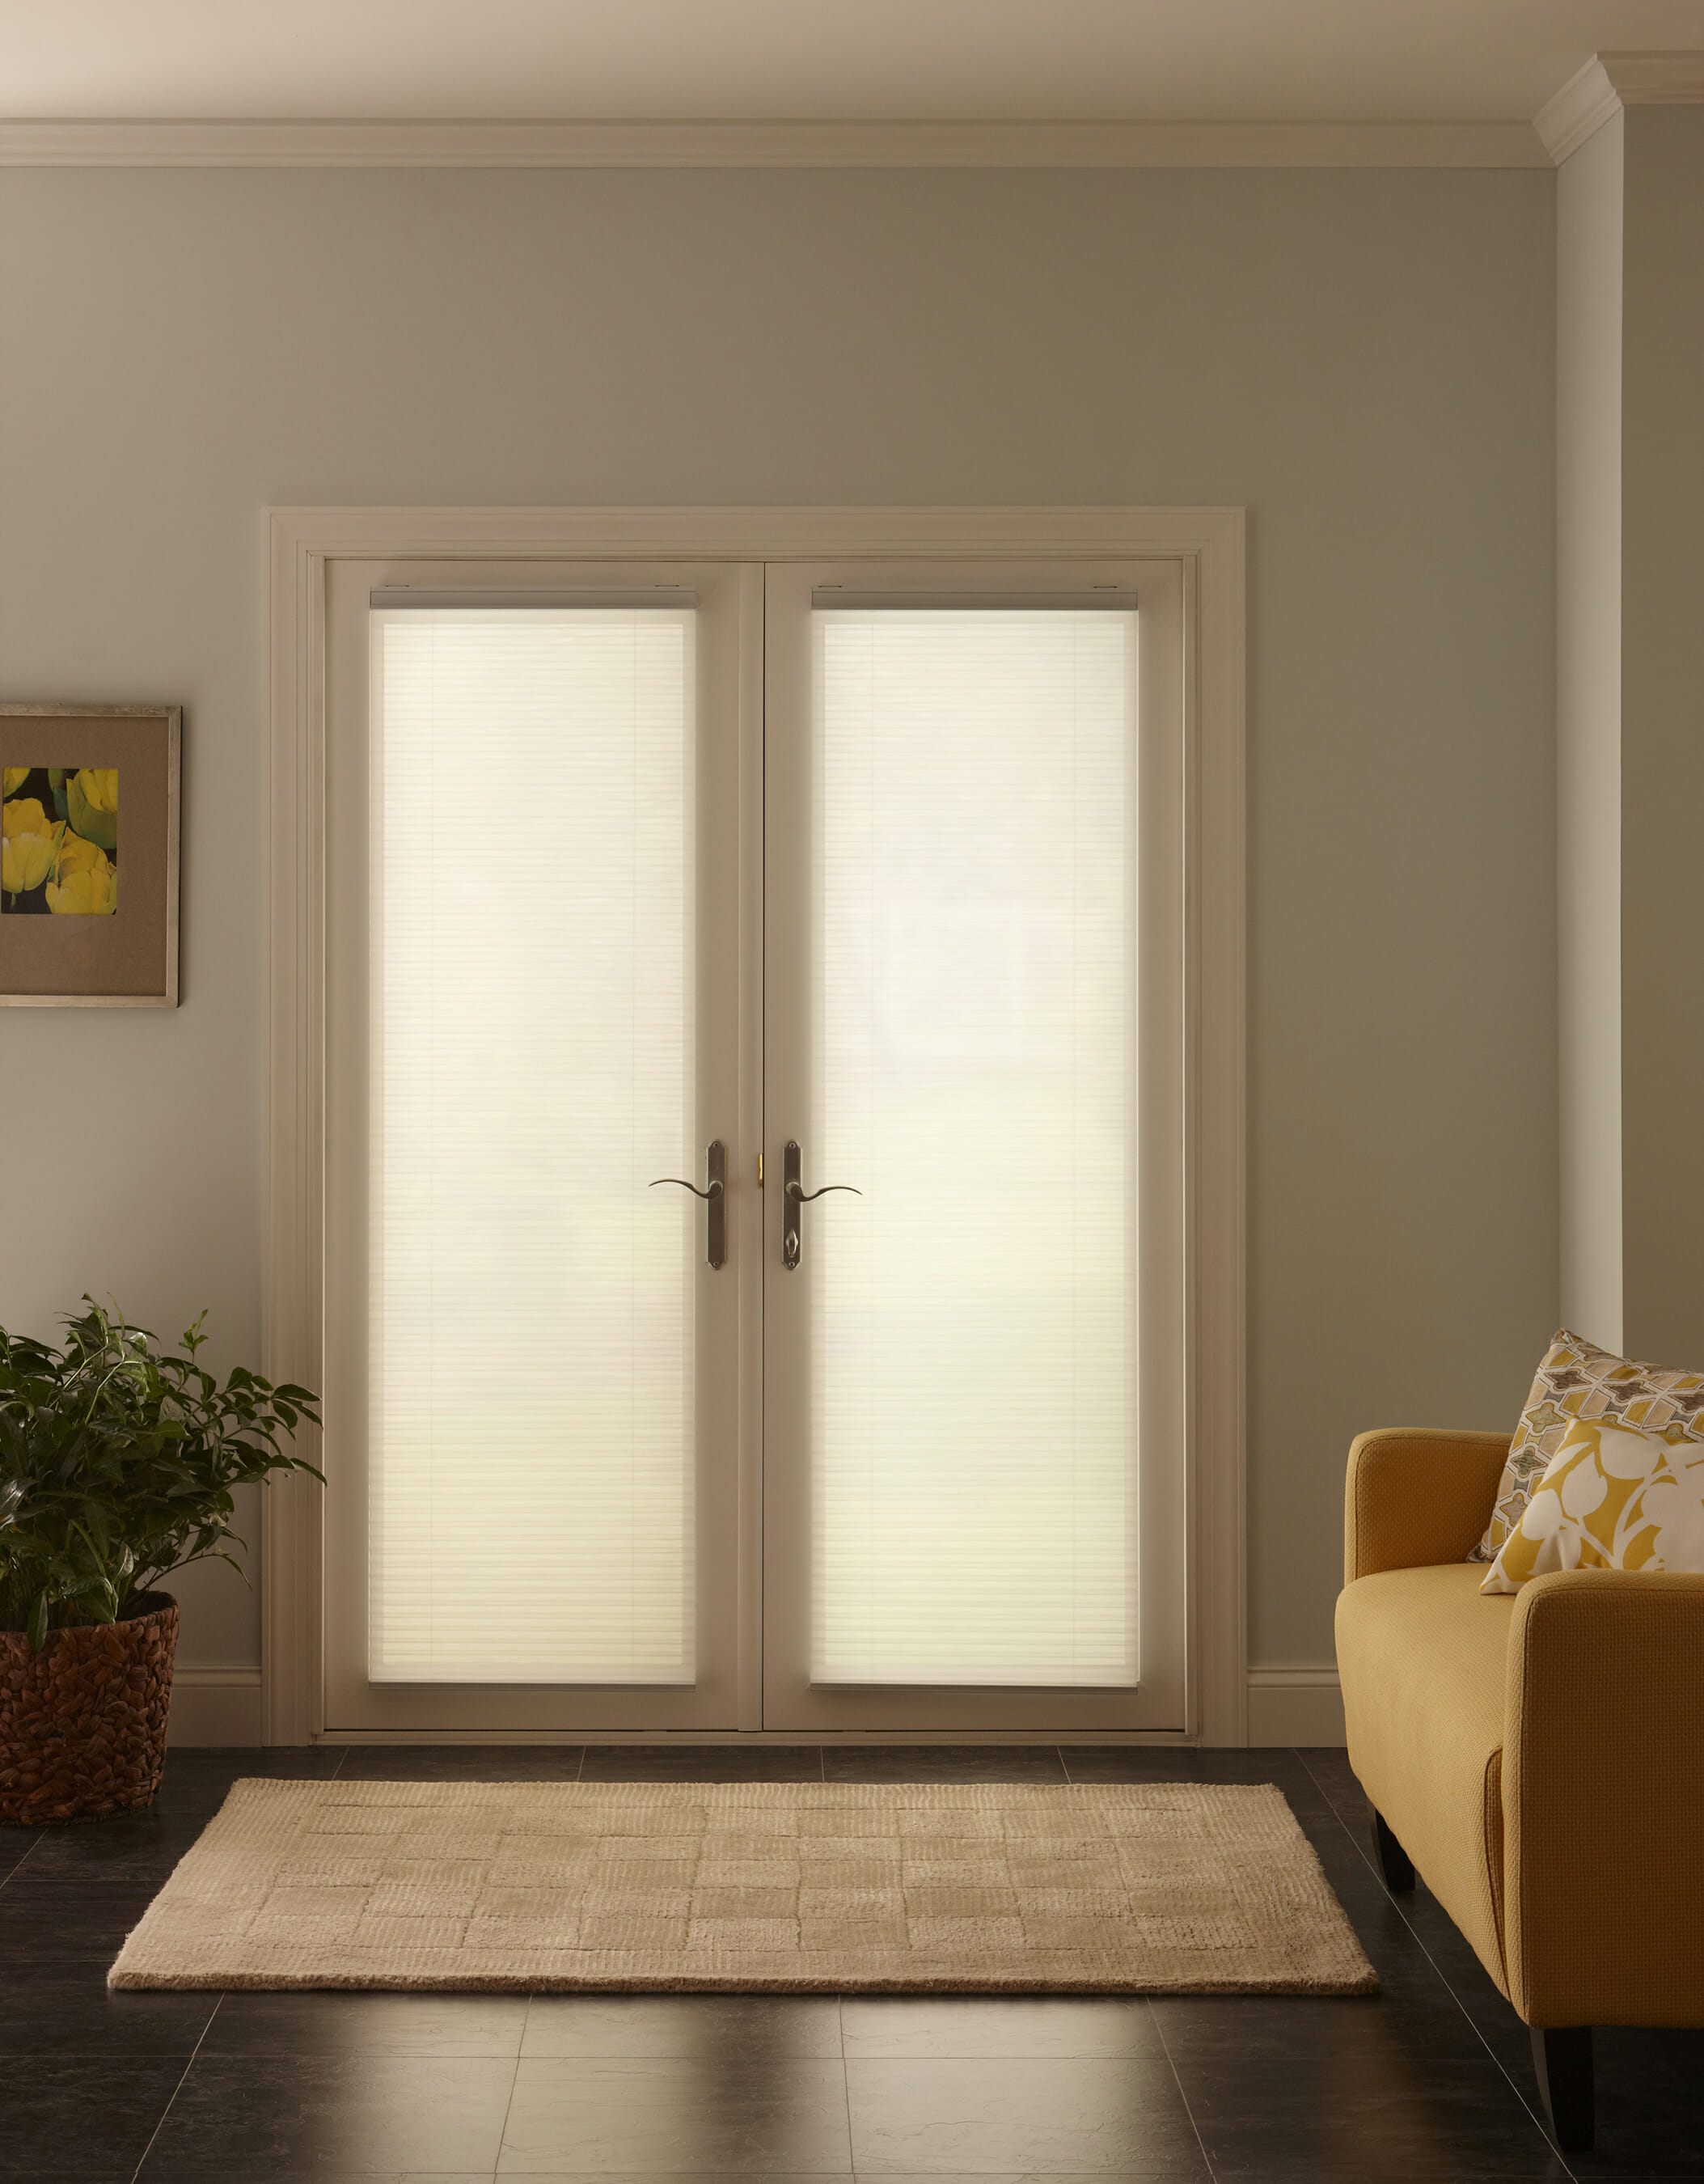 Curtains blackout honeycomb shades blackout shades blinds blinds and - Cell Shades On French Doors Down